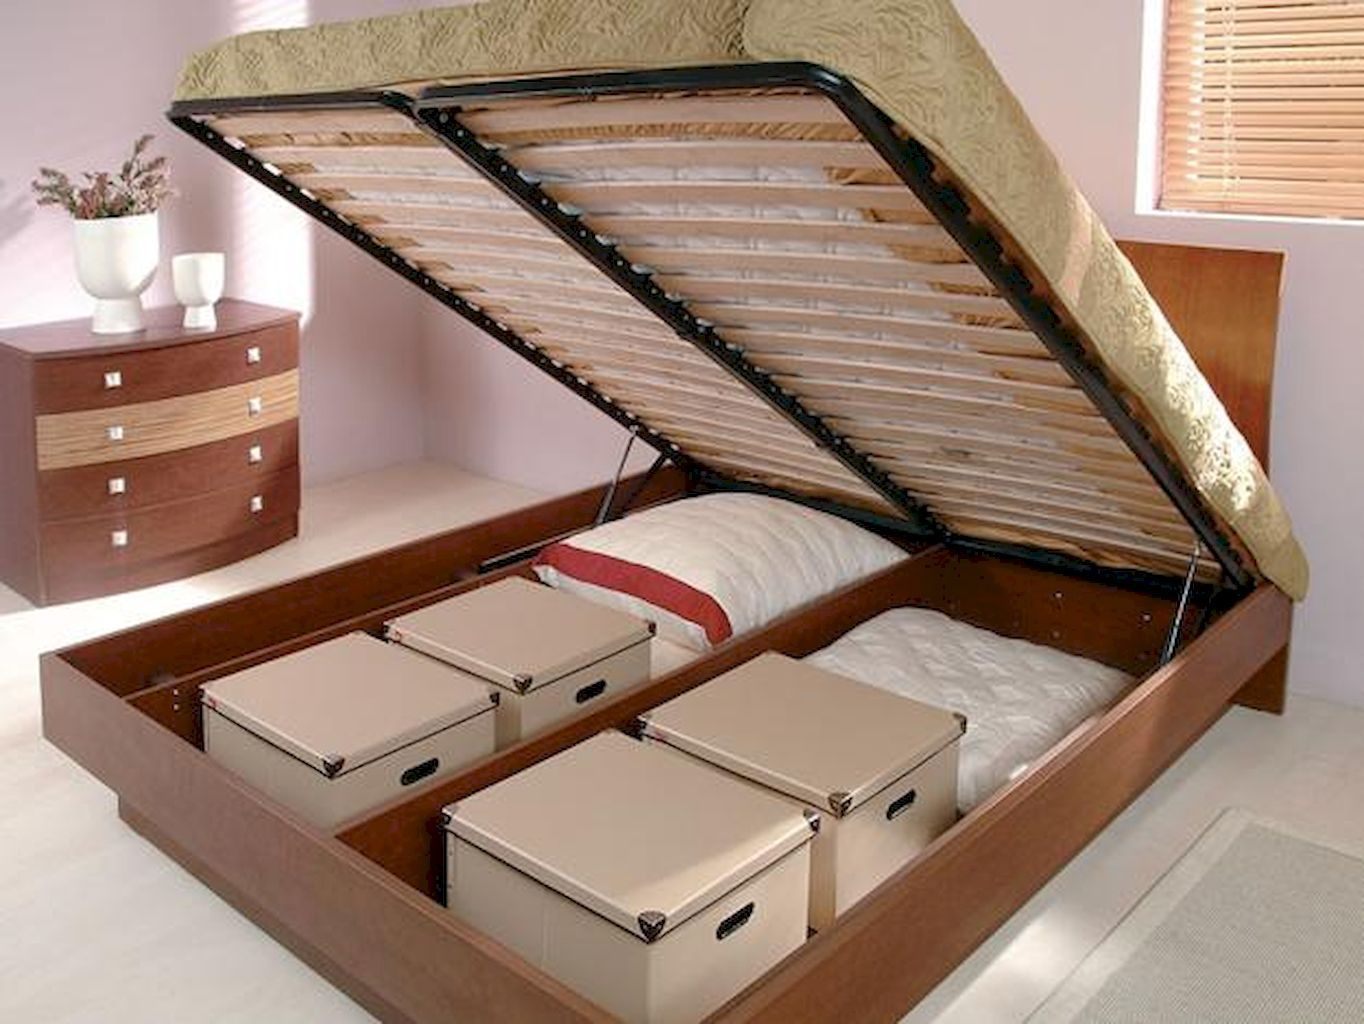 76 Creative Under Bed Storage Ideas For Bedrooms